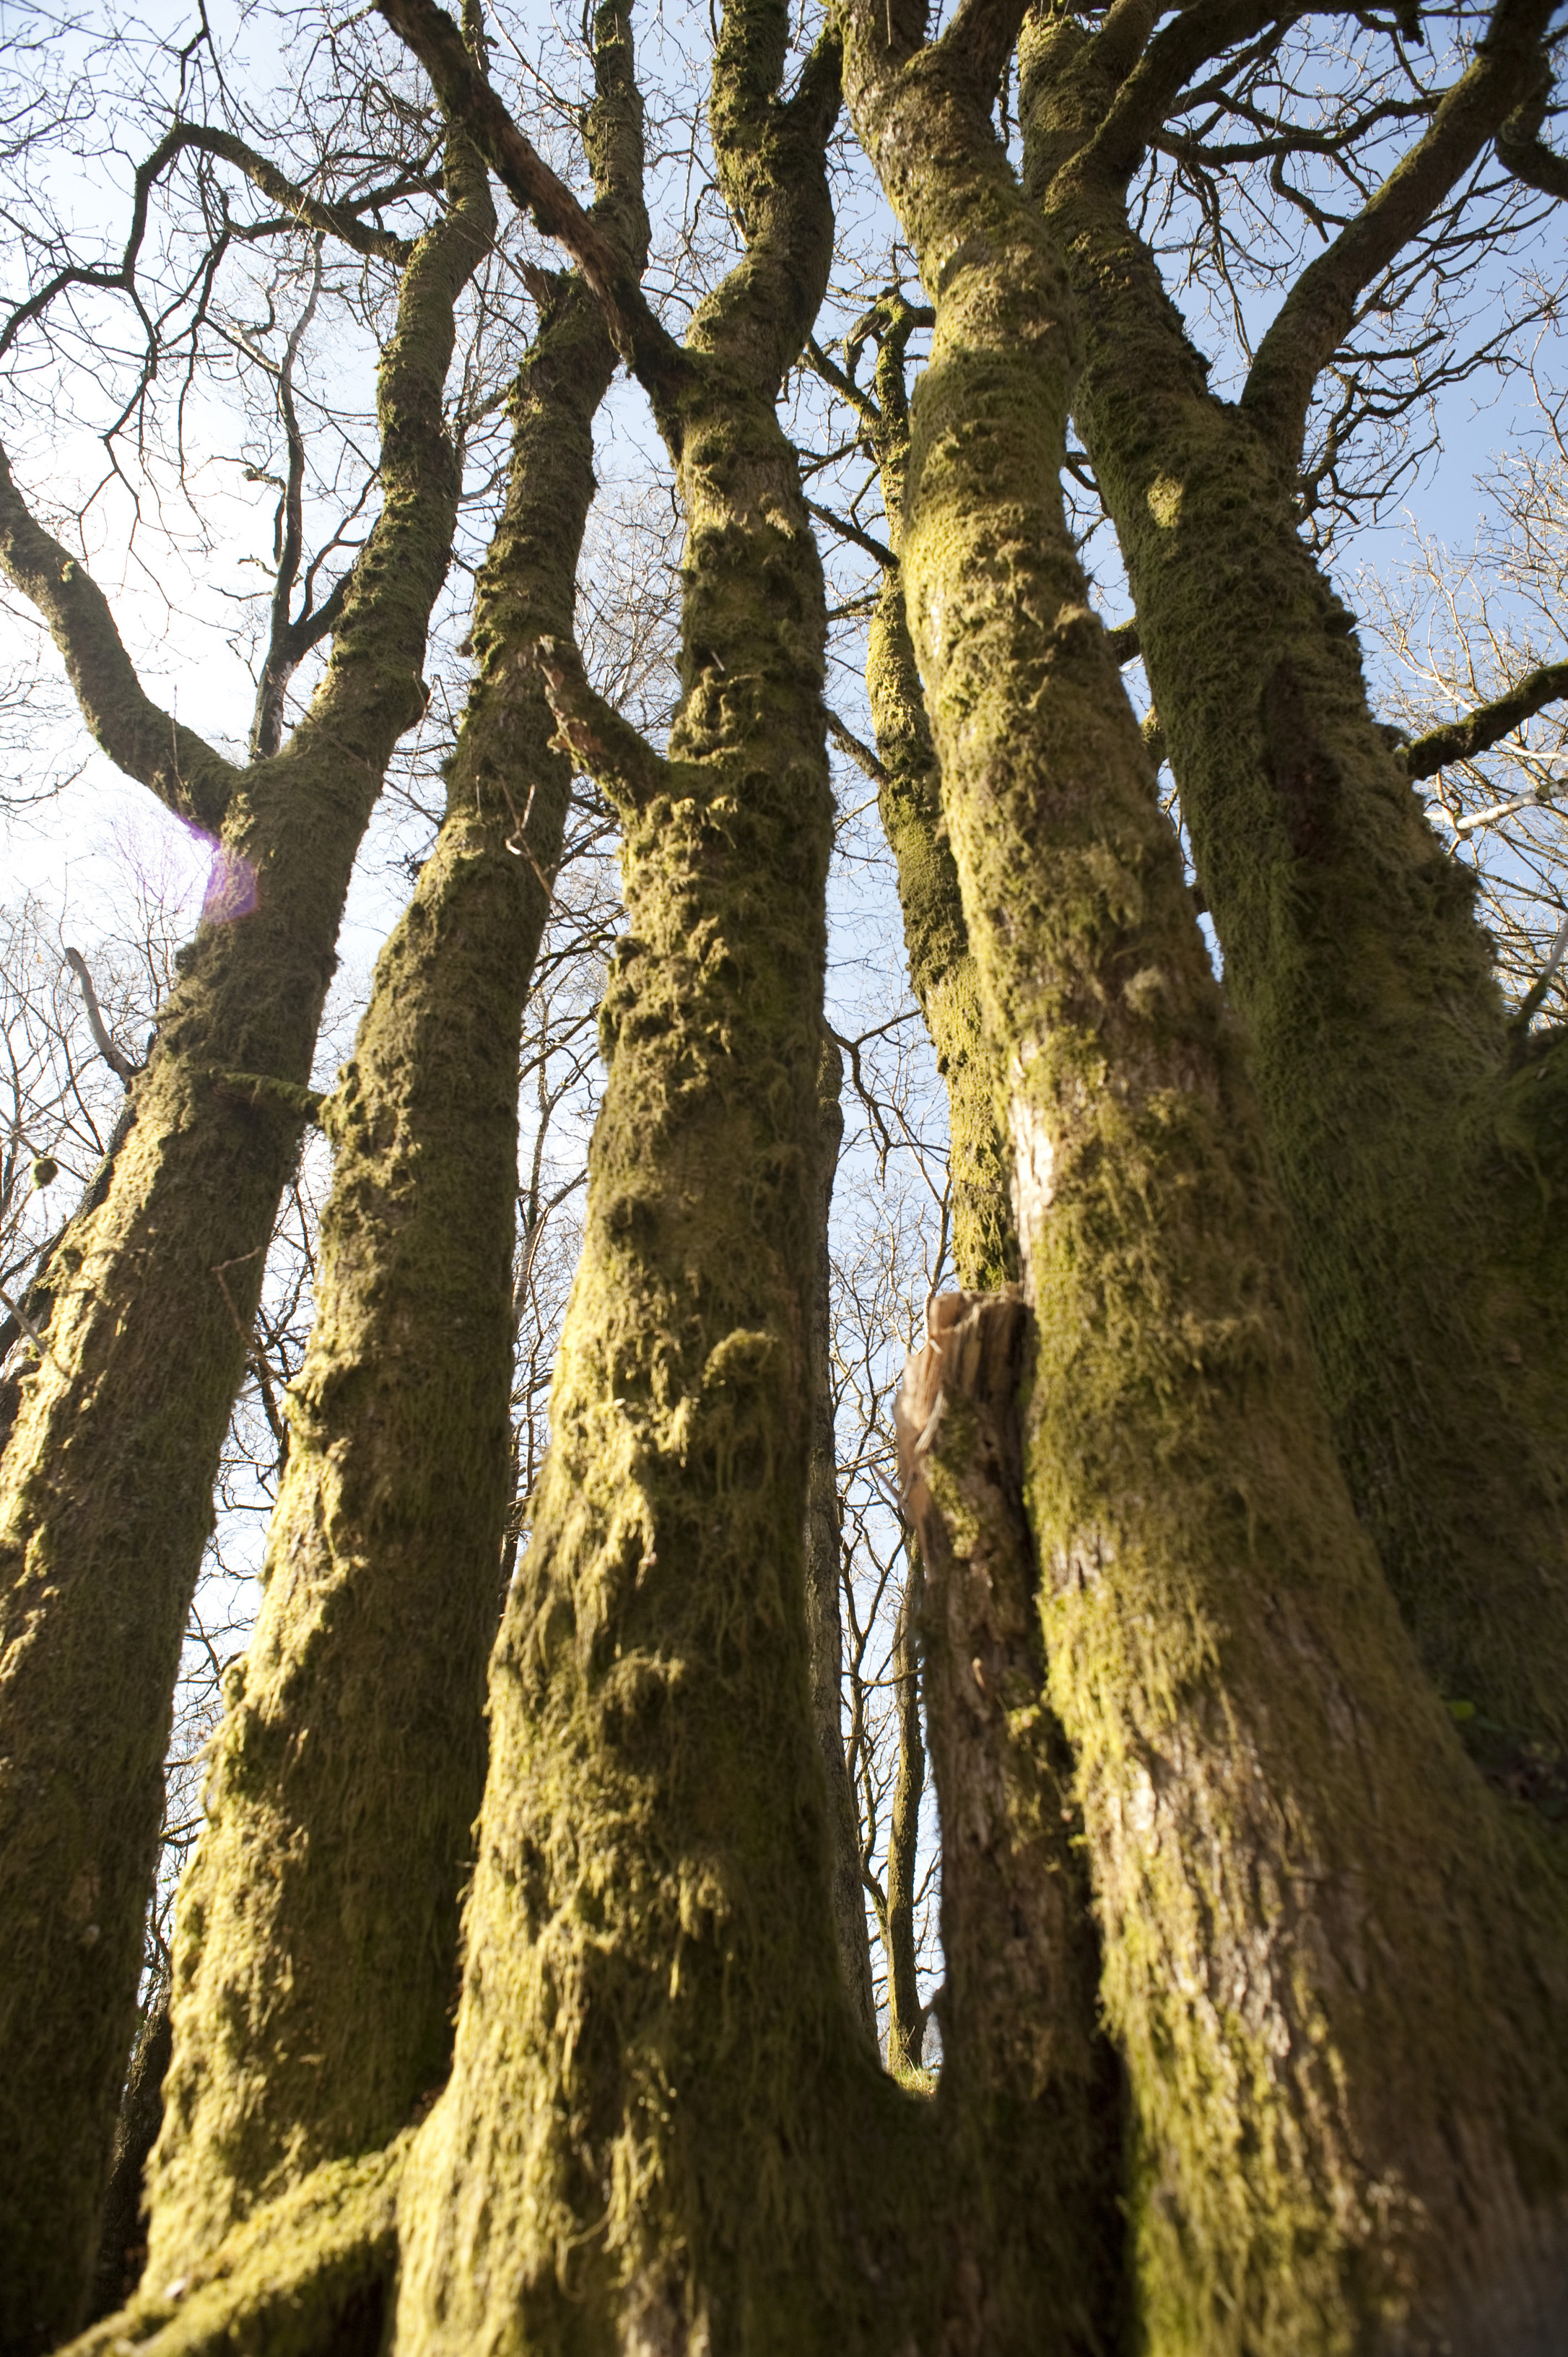 Low angle view of the trunks of a copse of tall trees with their bark covered in moss and lichen